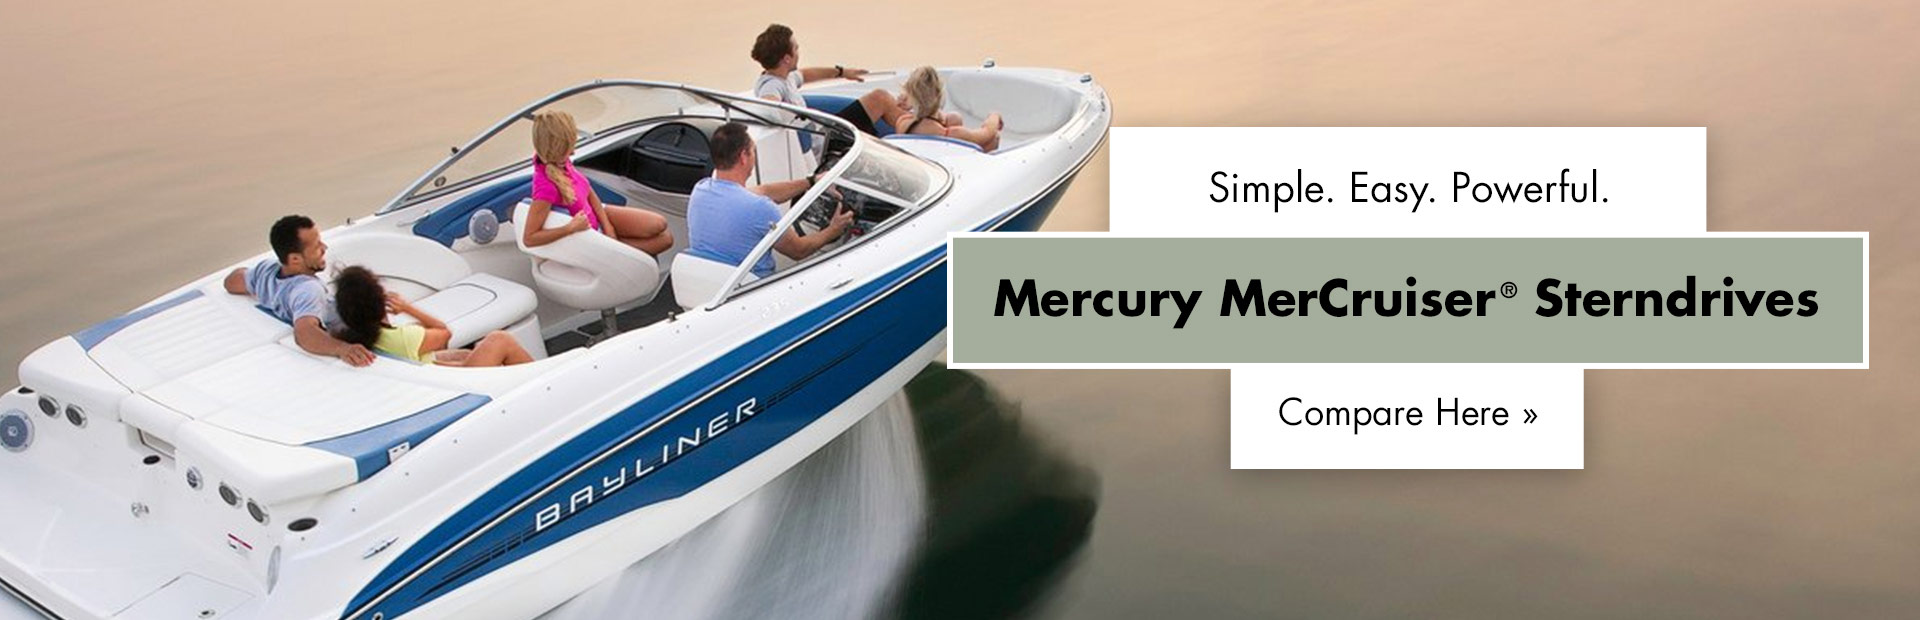 Mercury MerCruiser® Sterndrives: Click here to view the models.